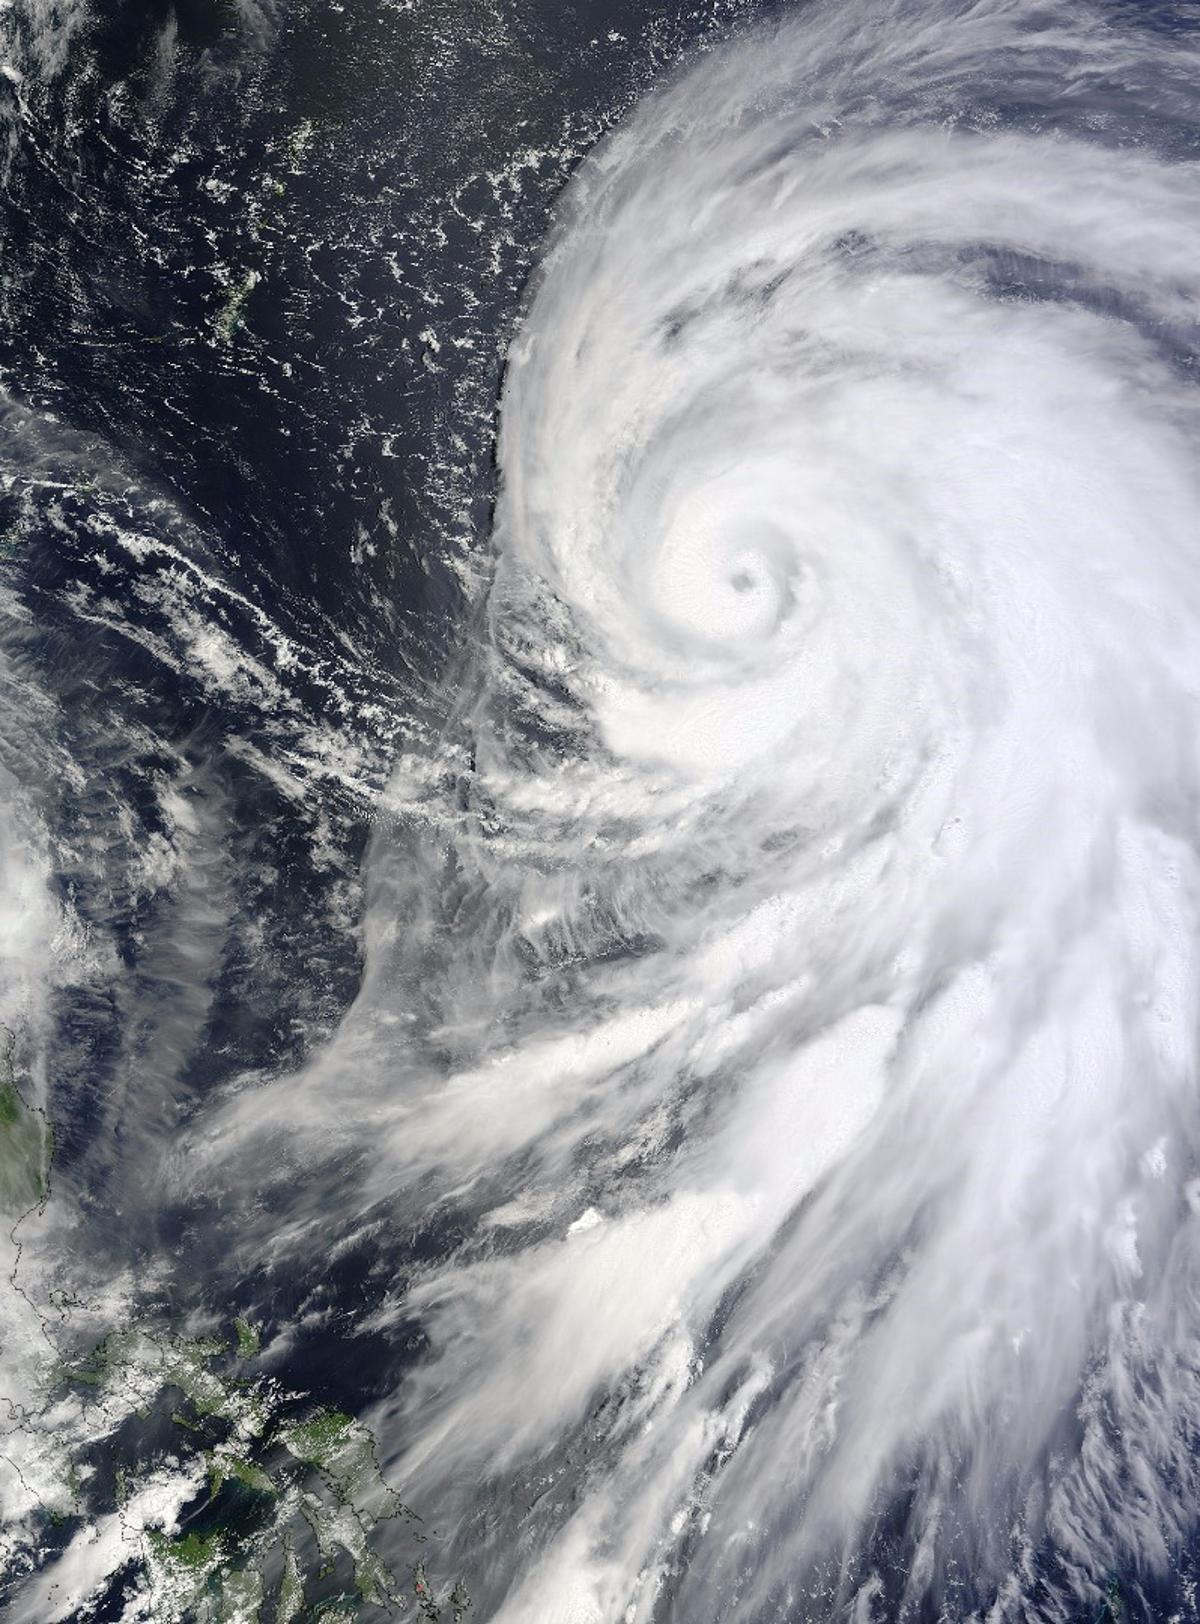 Typhoon Bolaven was one of the storms observed by the Fermi Gamma-ray Space Telescope